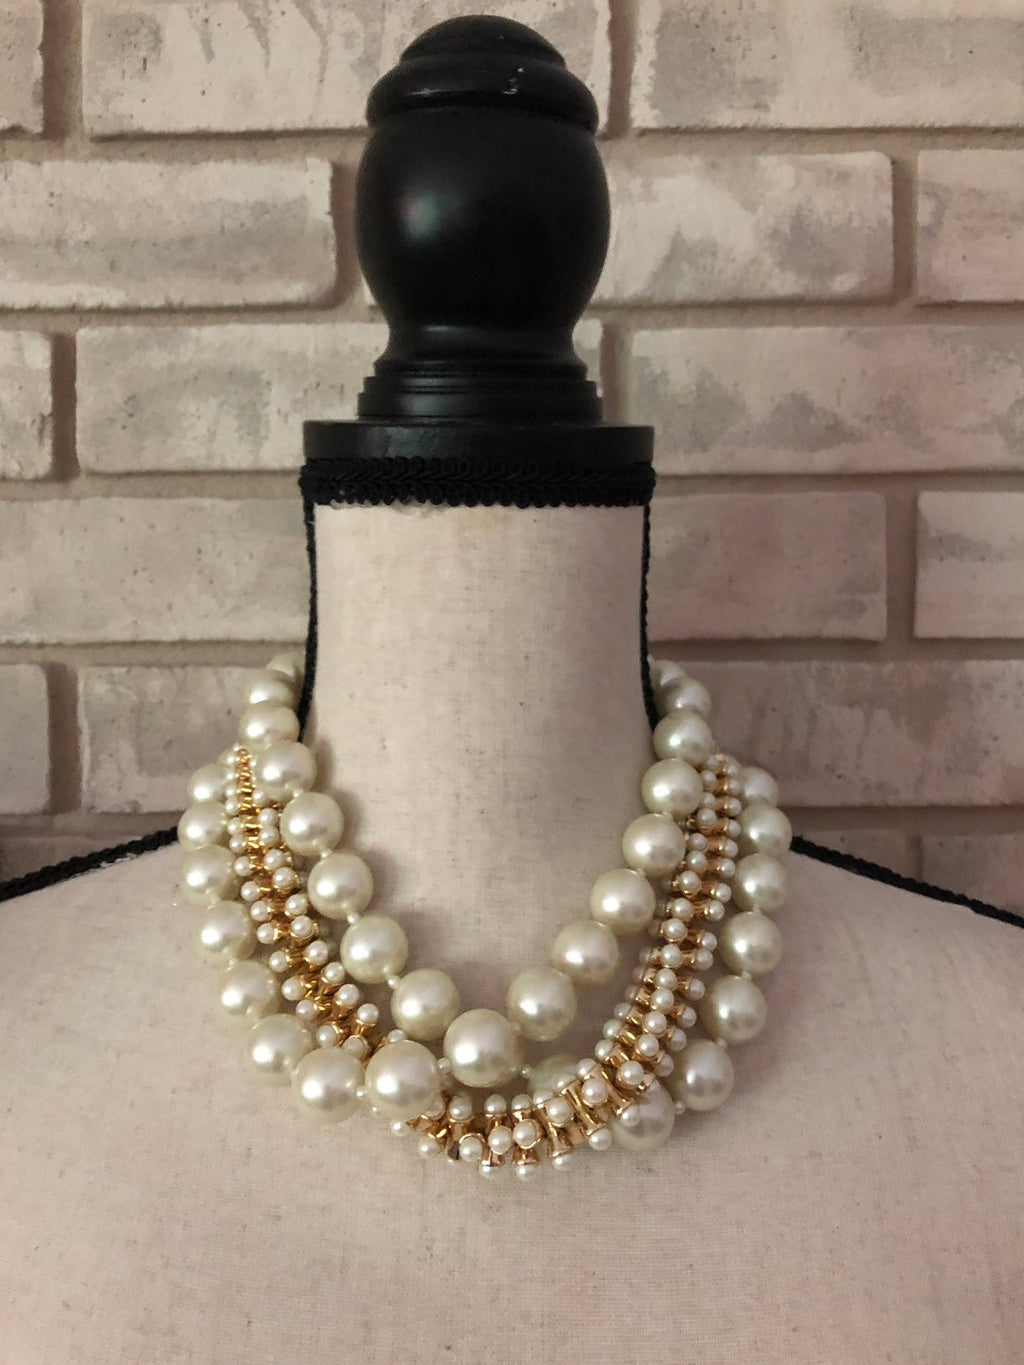 Kenneth Jay Lane Chunky Layered Pearl Cluster Necklace-Sustainable Fashion with Vintage Style-Trending Designer Fashion-24 Wishes